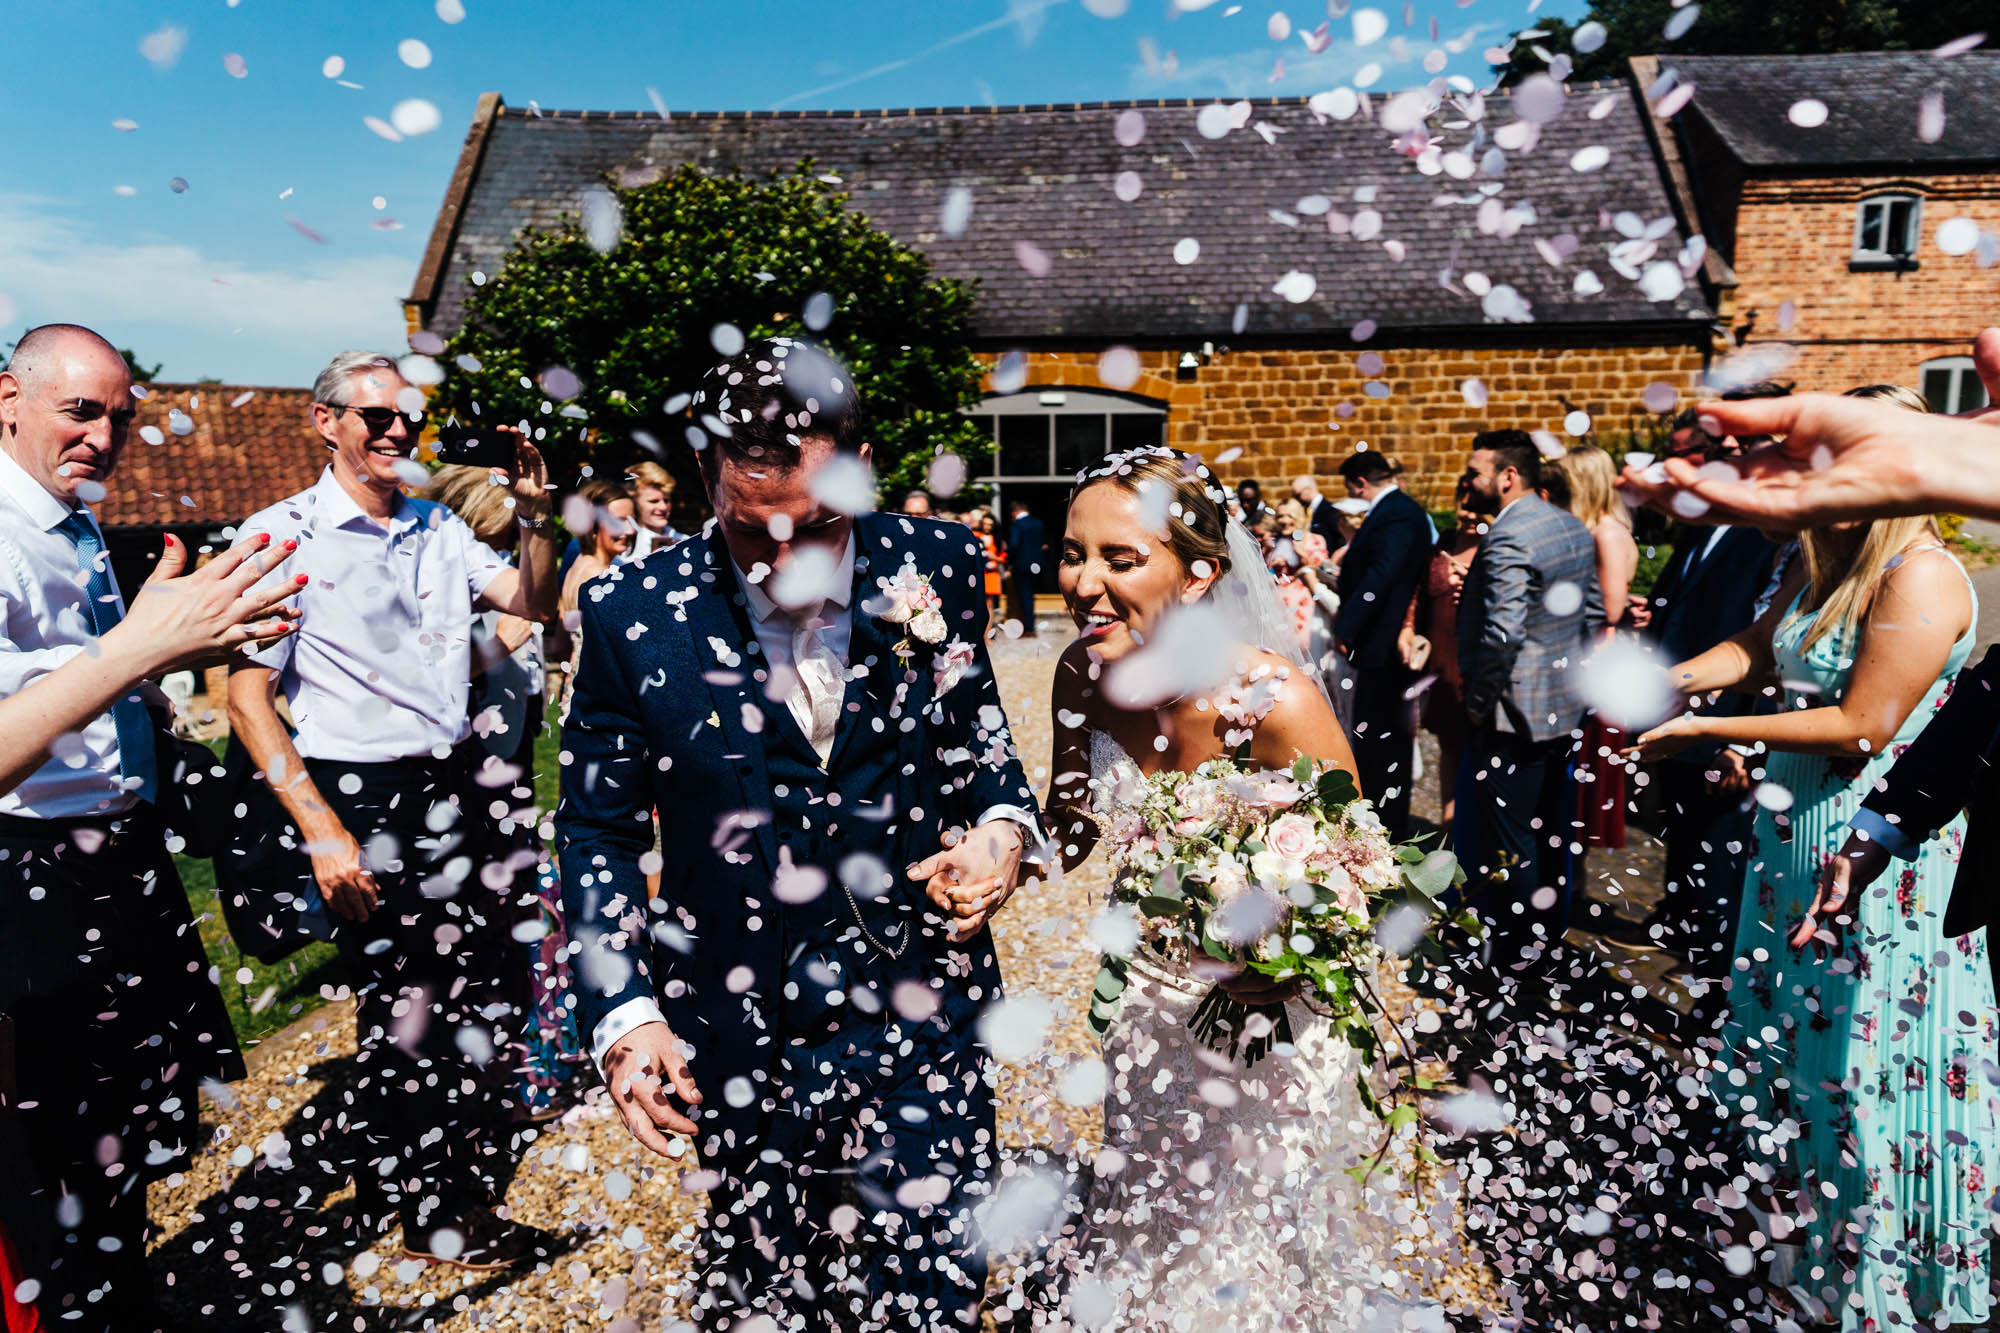 wedding-at-the-barns-at-hunsbury-hill-29